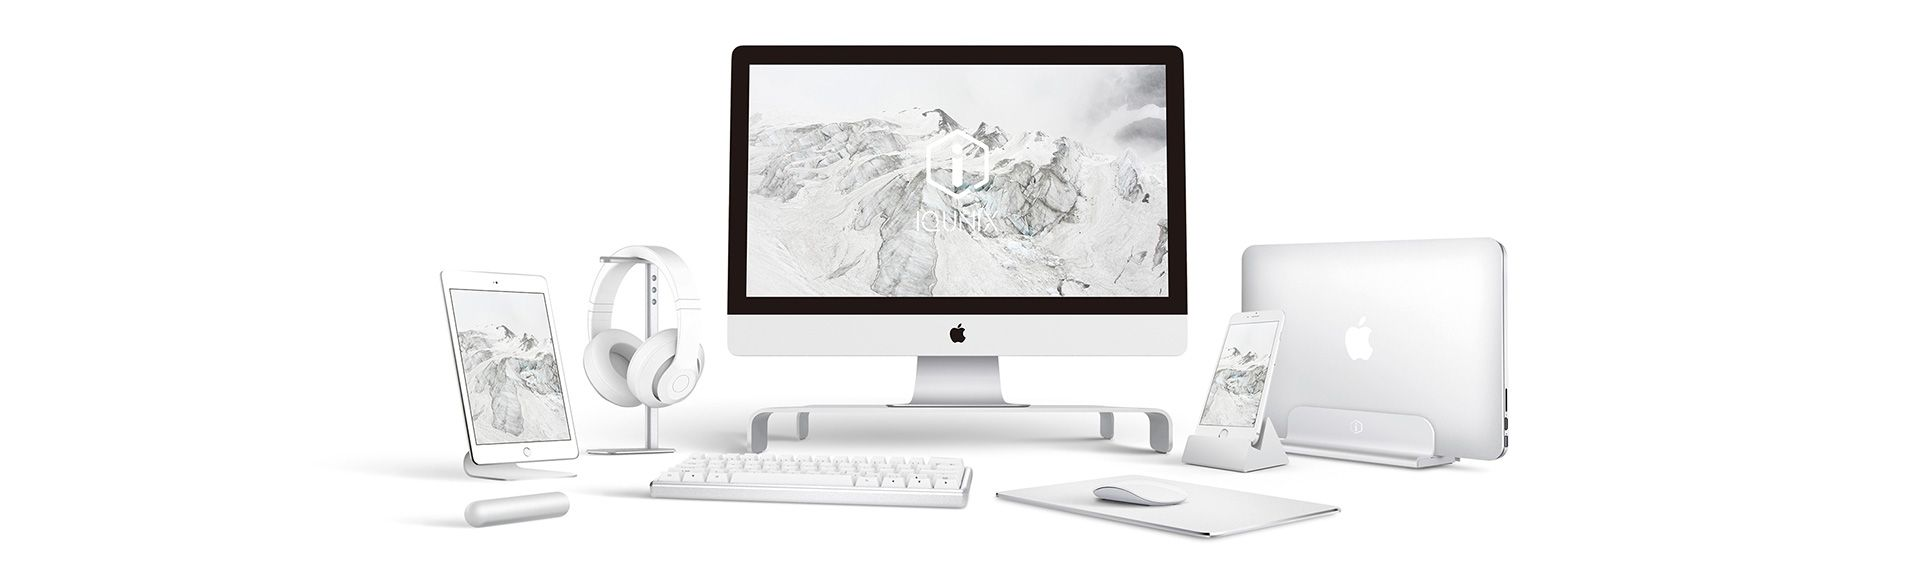 iQunix Hima Apple Certified Charge Dock (Silver) - Charging Station for iPhone 5/6/6S/7 Plus/iPad